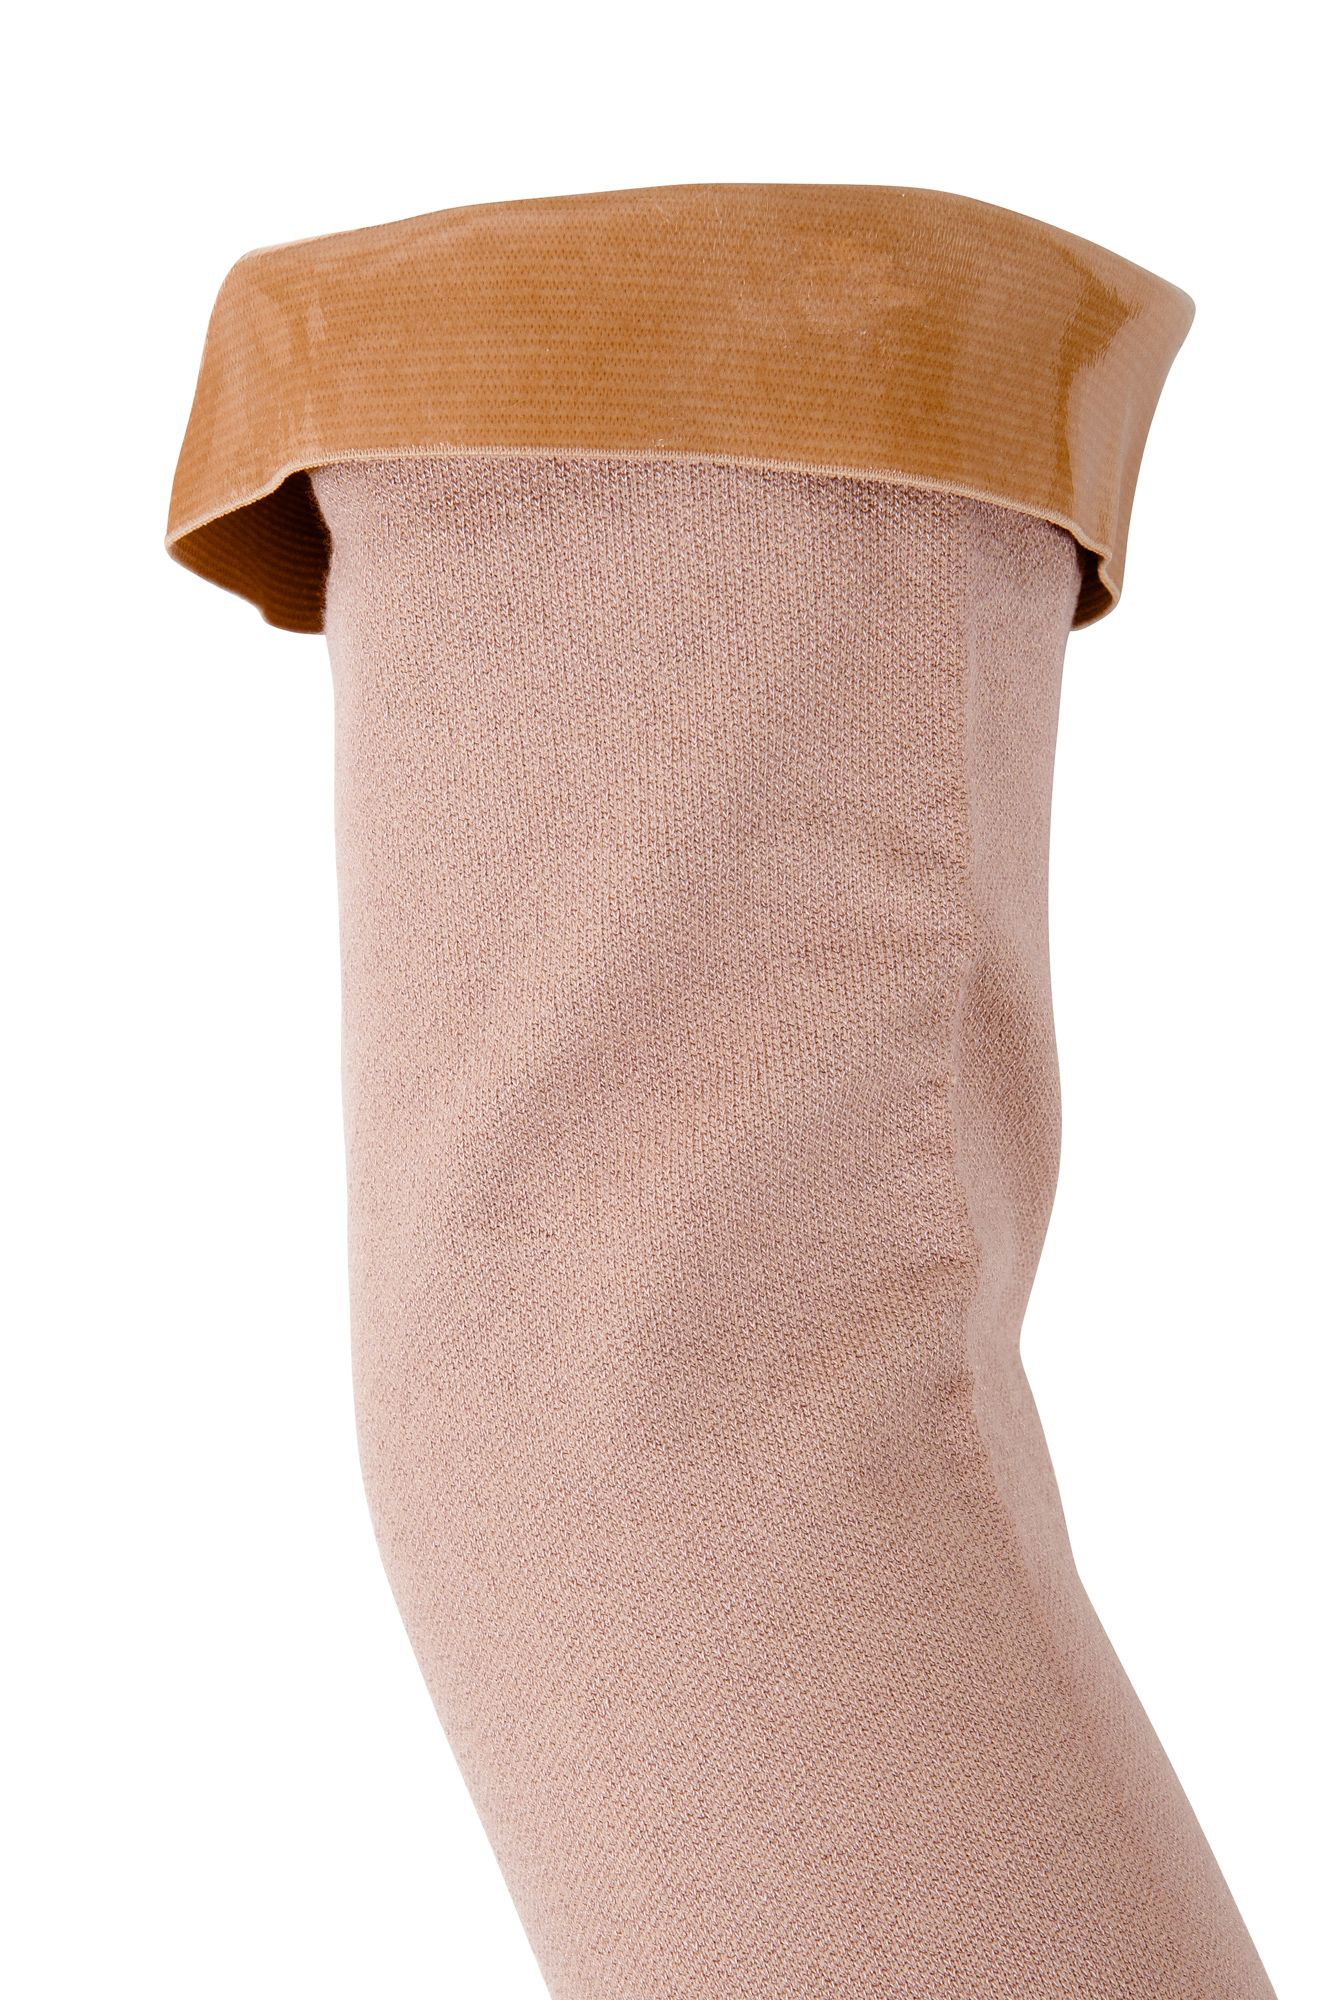 78e9846e82 Sigvaris Advance Class 3 Compression Arm Sleeve with Grip Top - Daylong